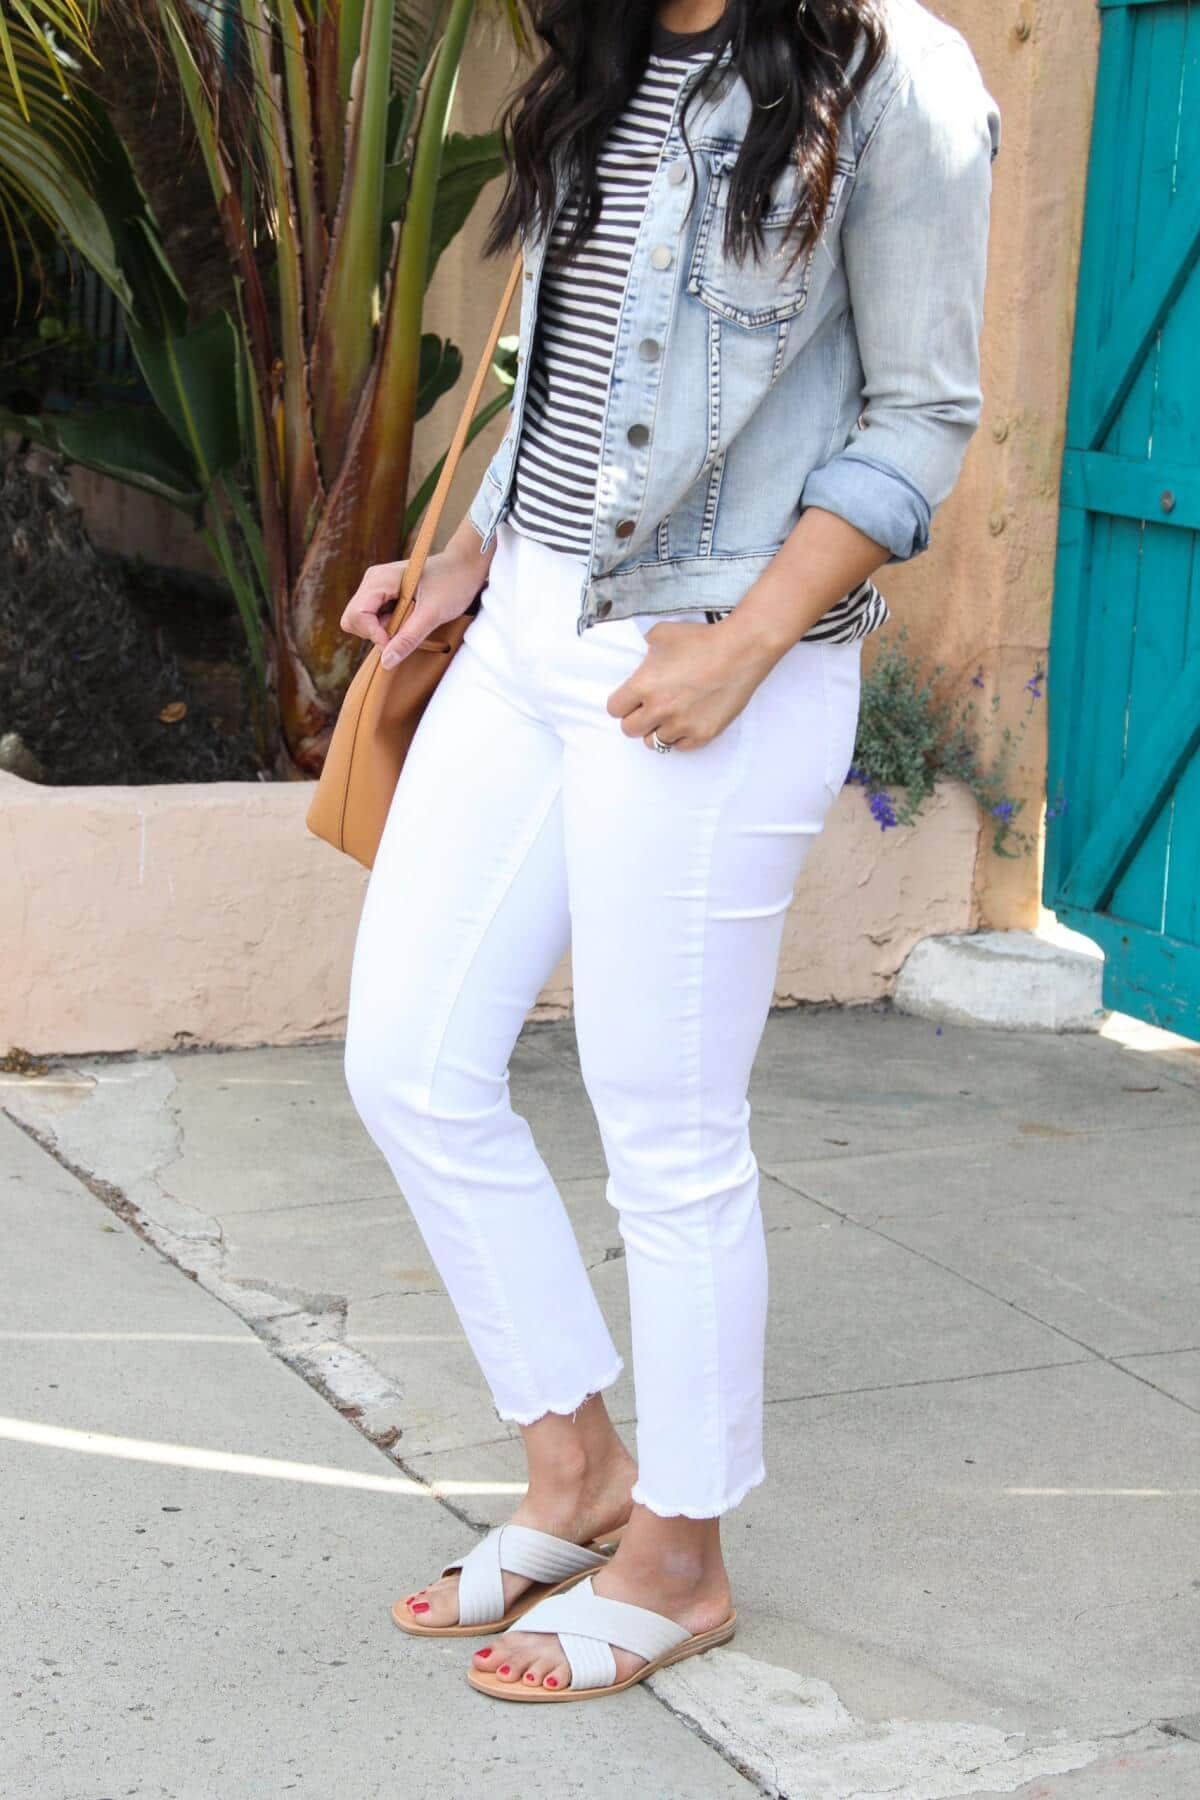 Easy to Wear Shoes for Spring: DV by Dolce Vita Lyra white slides + Madewell black and white striped tee + white straight leg jeans + denim jacket + tan bag